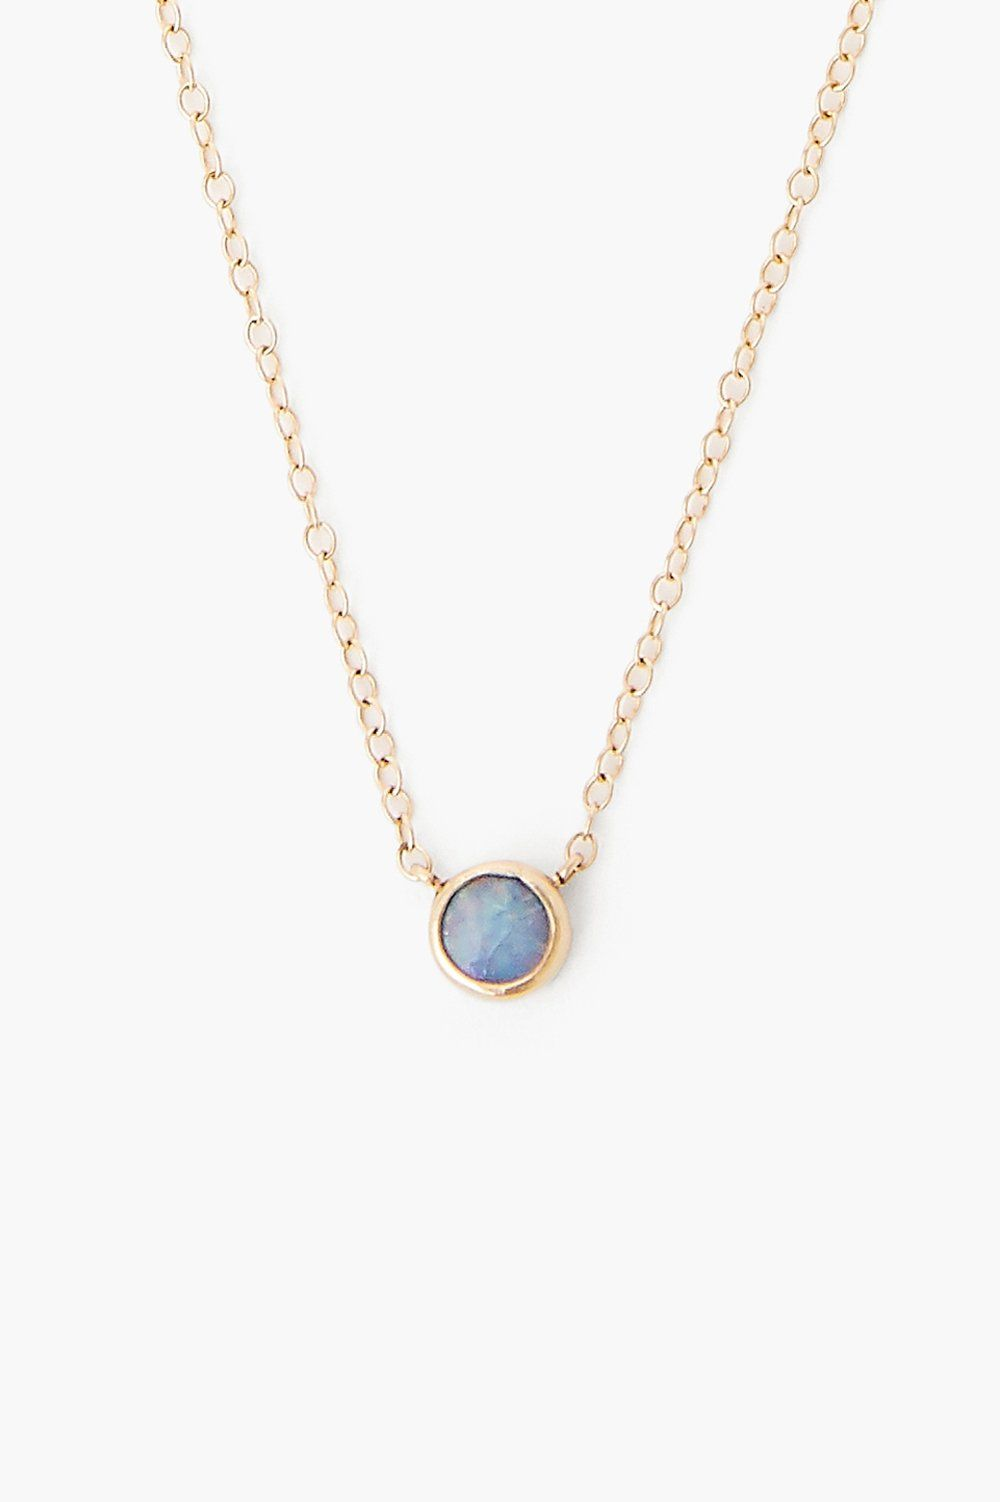 Blue Opal Pendant 14k Gold Necklace